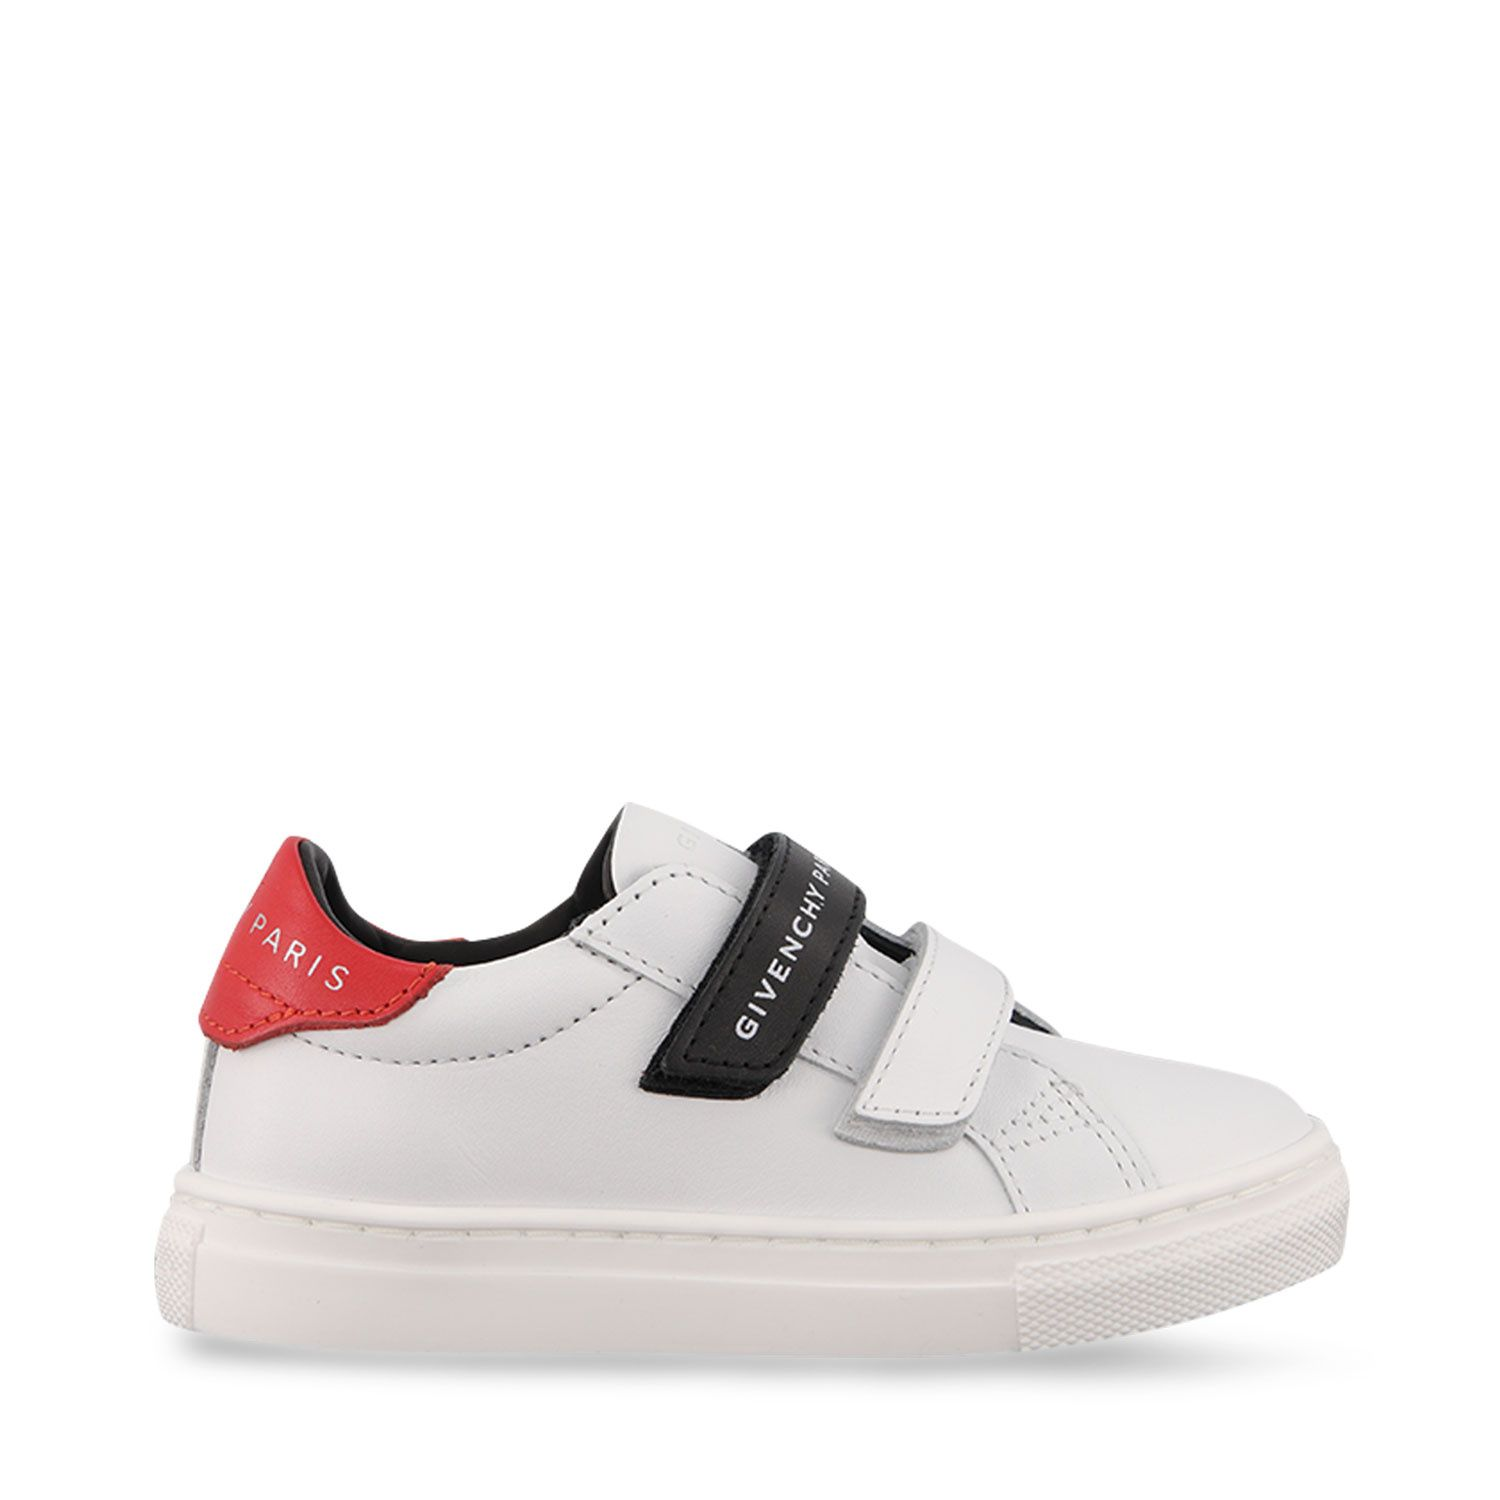 Picture of Givenchy H29055 kids sneakers white